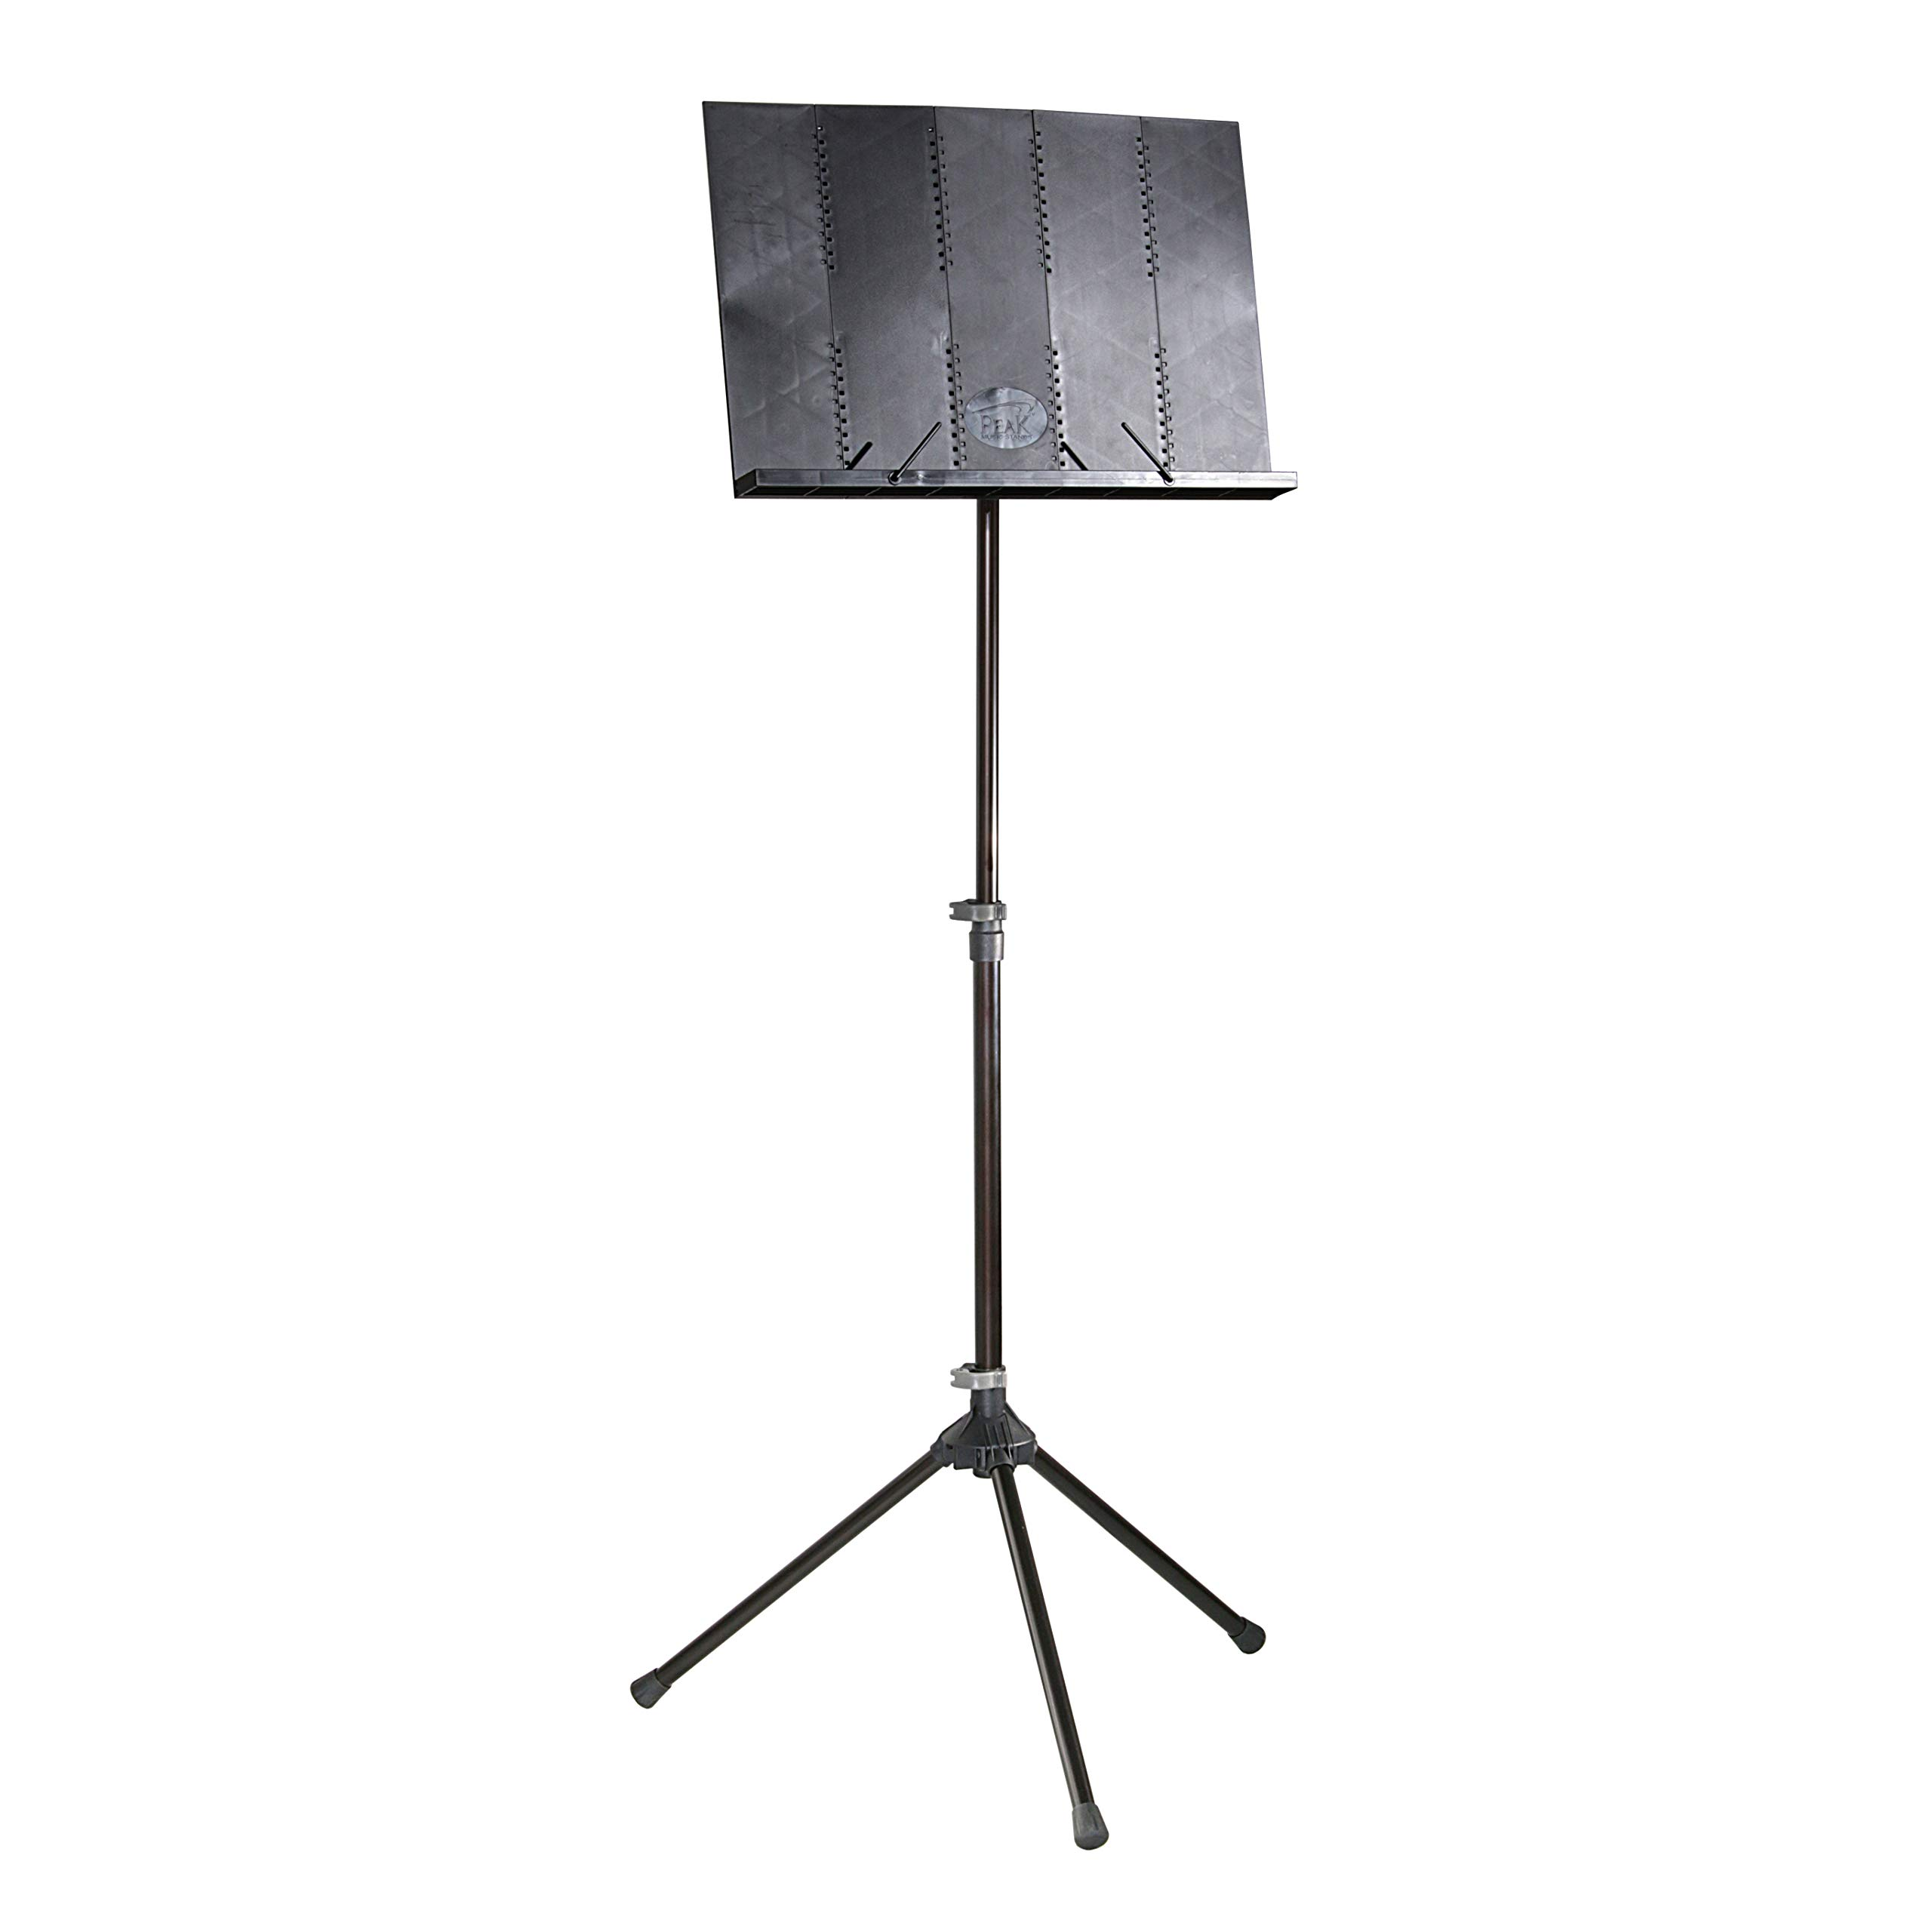 Peak Music Stands Music Stand (SMS-20) by Peak Music Stands